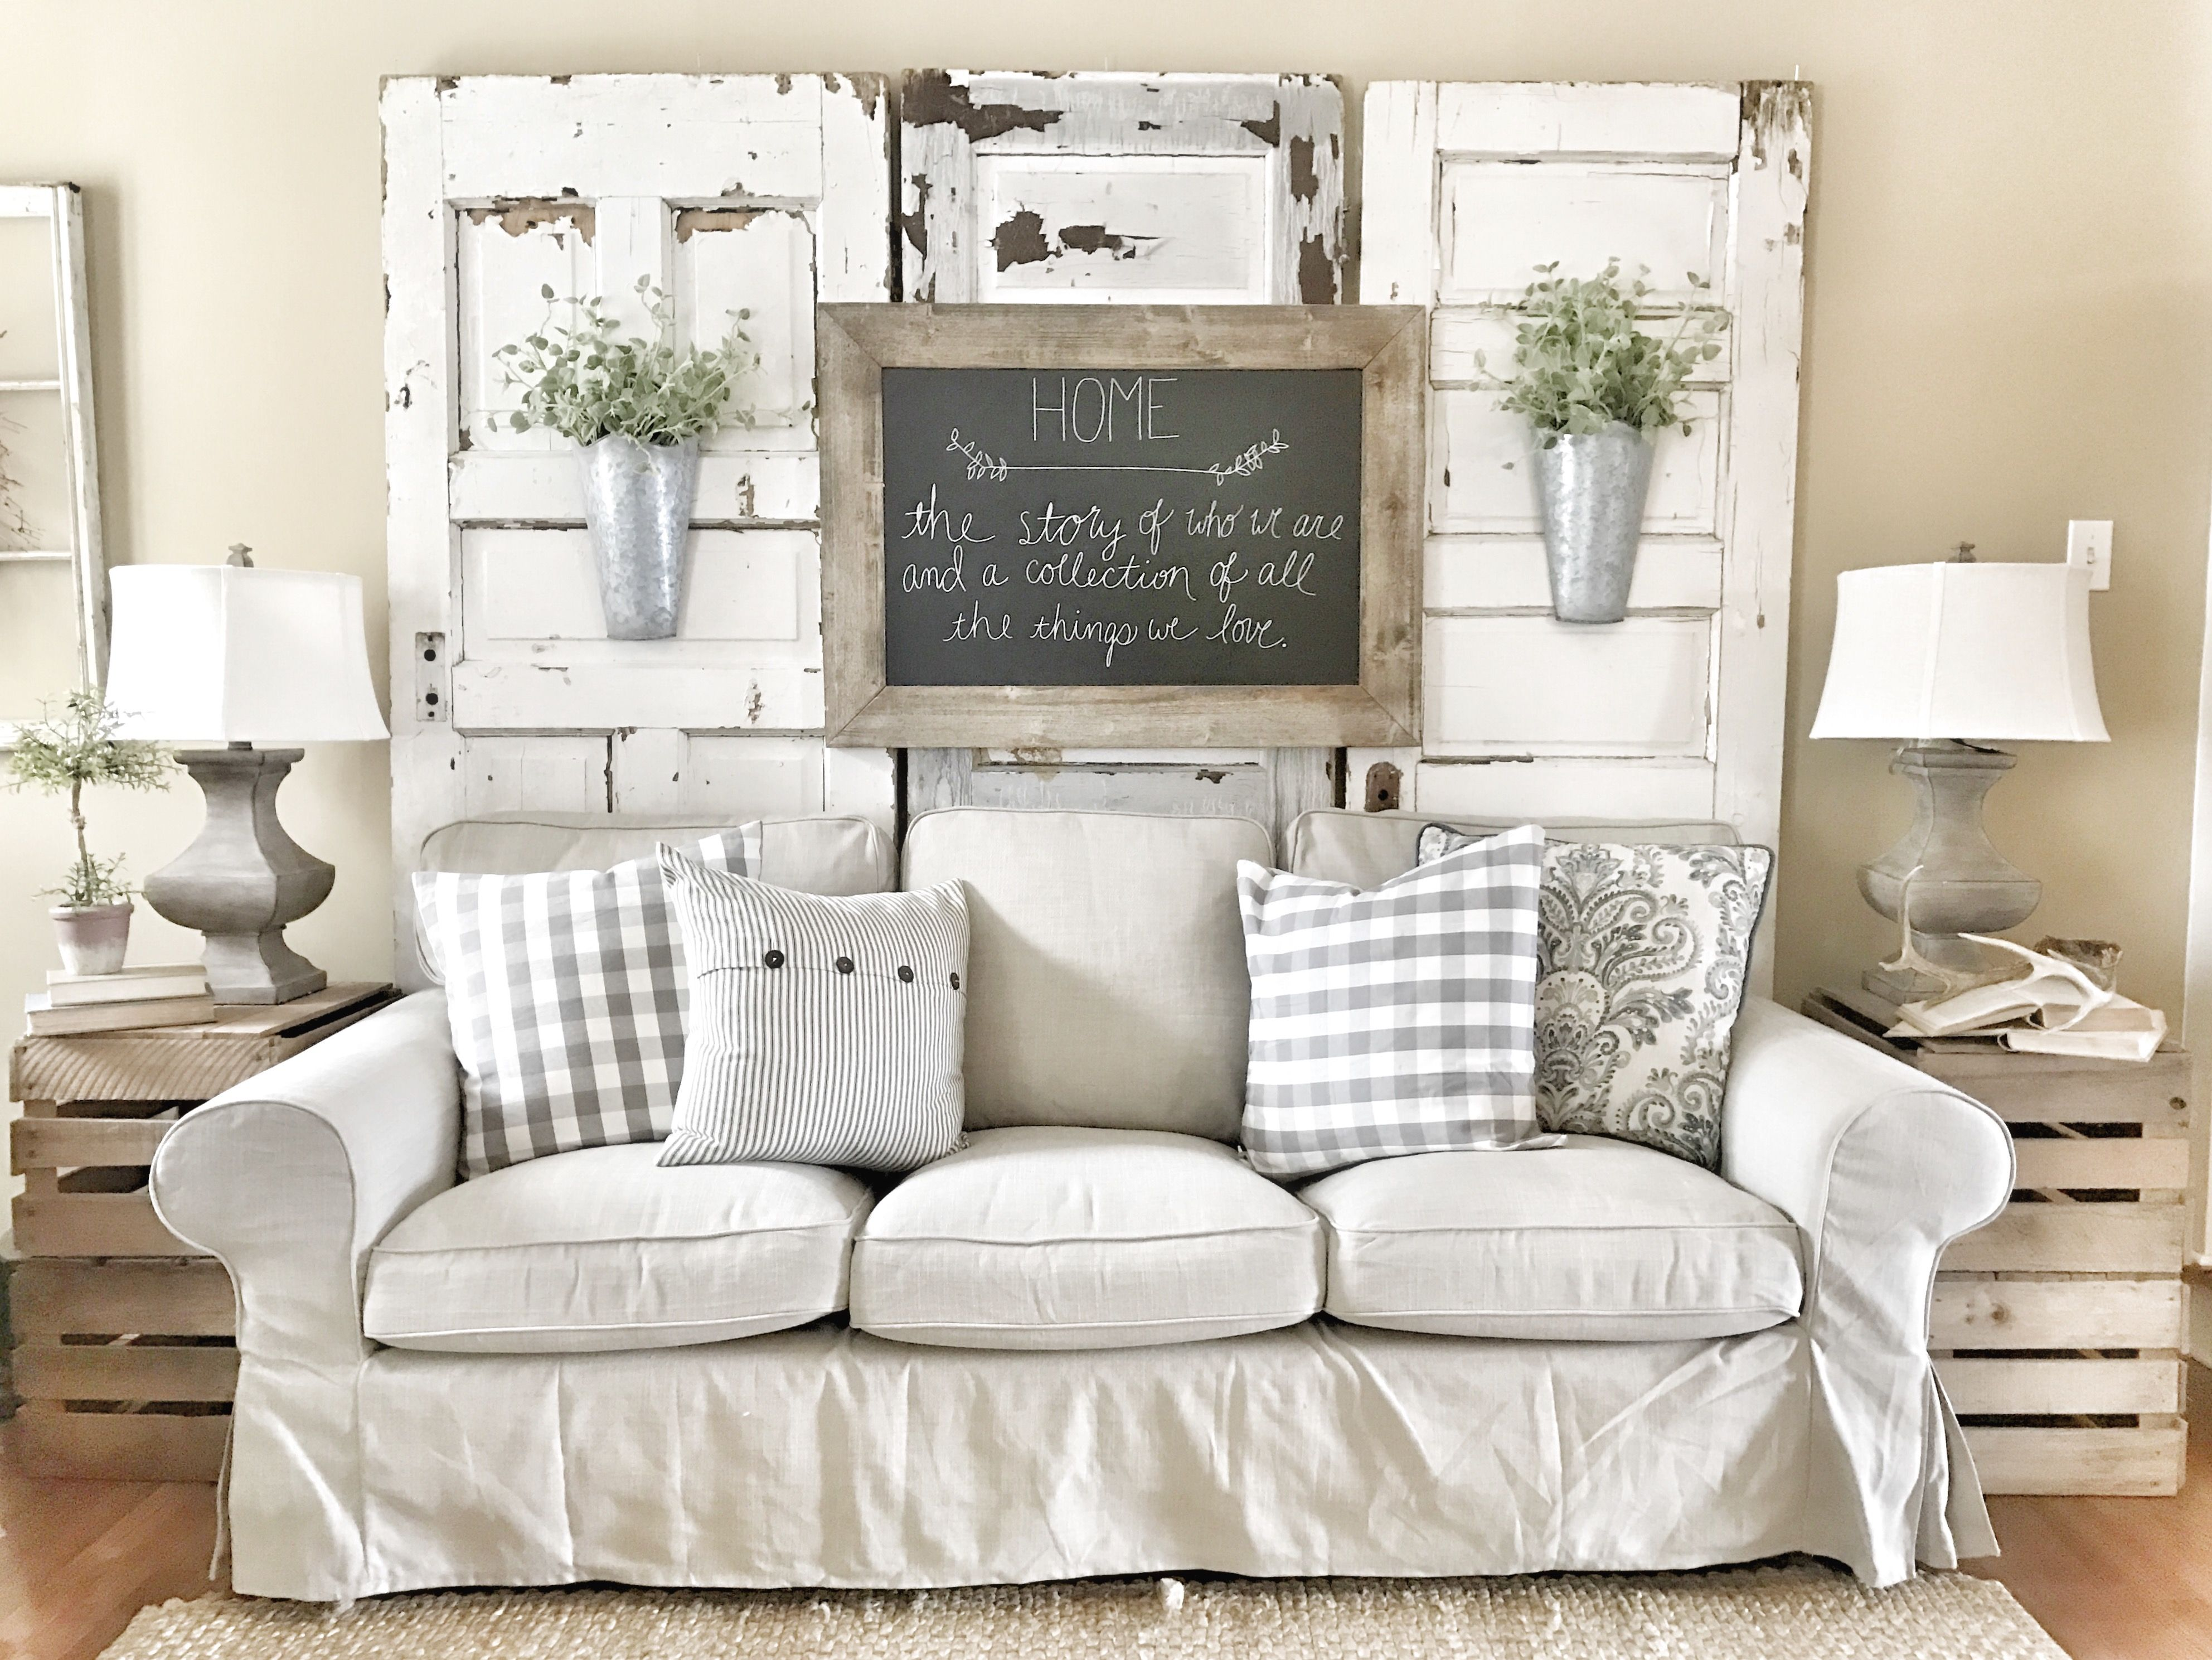 farmhouse decor farmhouse style living room decor split modern apartment decorating ideas Farmhouse living room! IKEA couches with chippy doors. IG @bless_this_nest.  74 Amazing Rustic Farmhouse Style Living Room Design Ideas ...